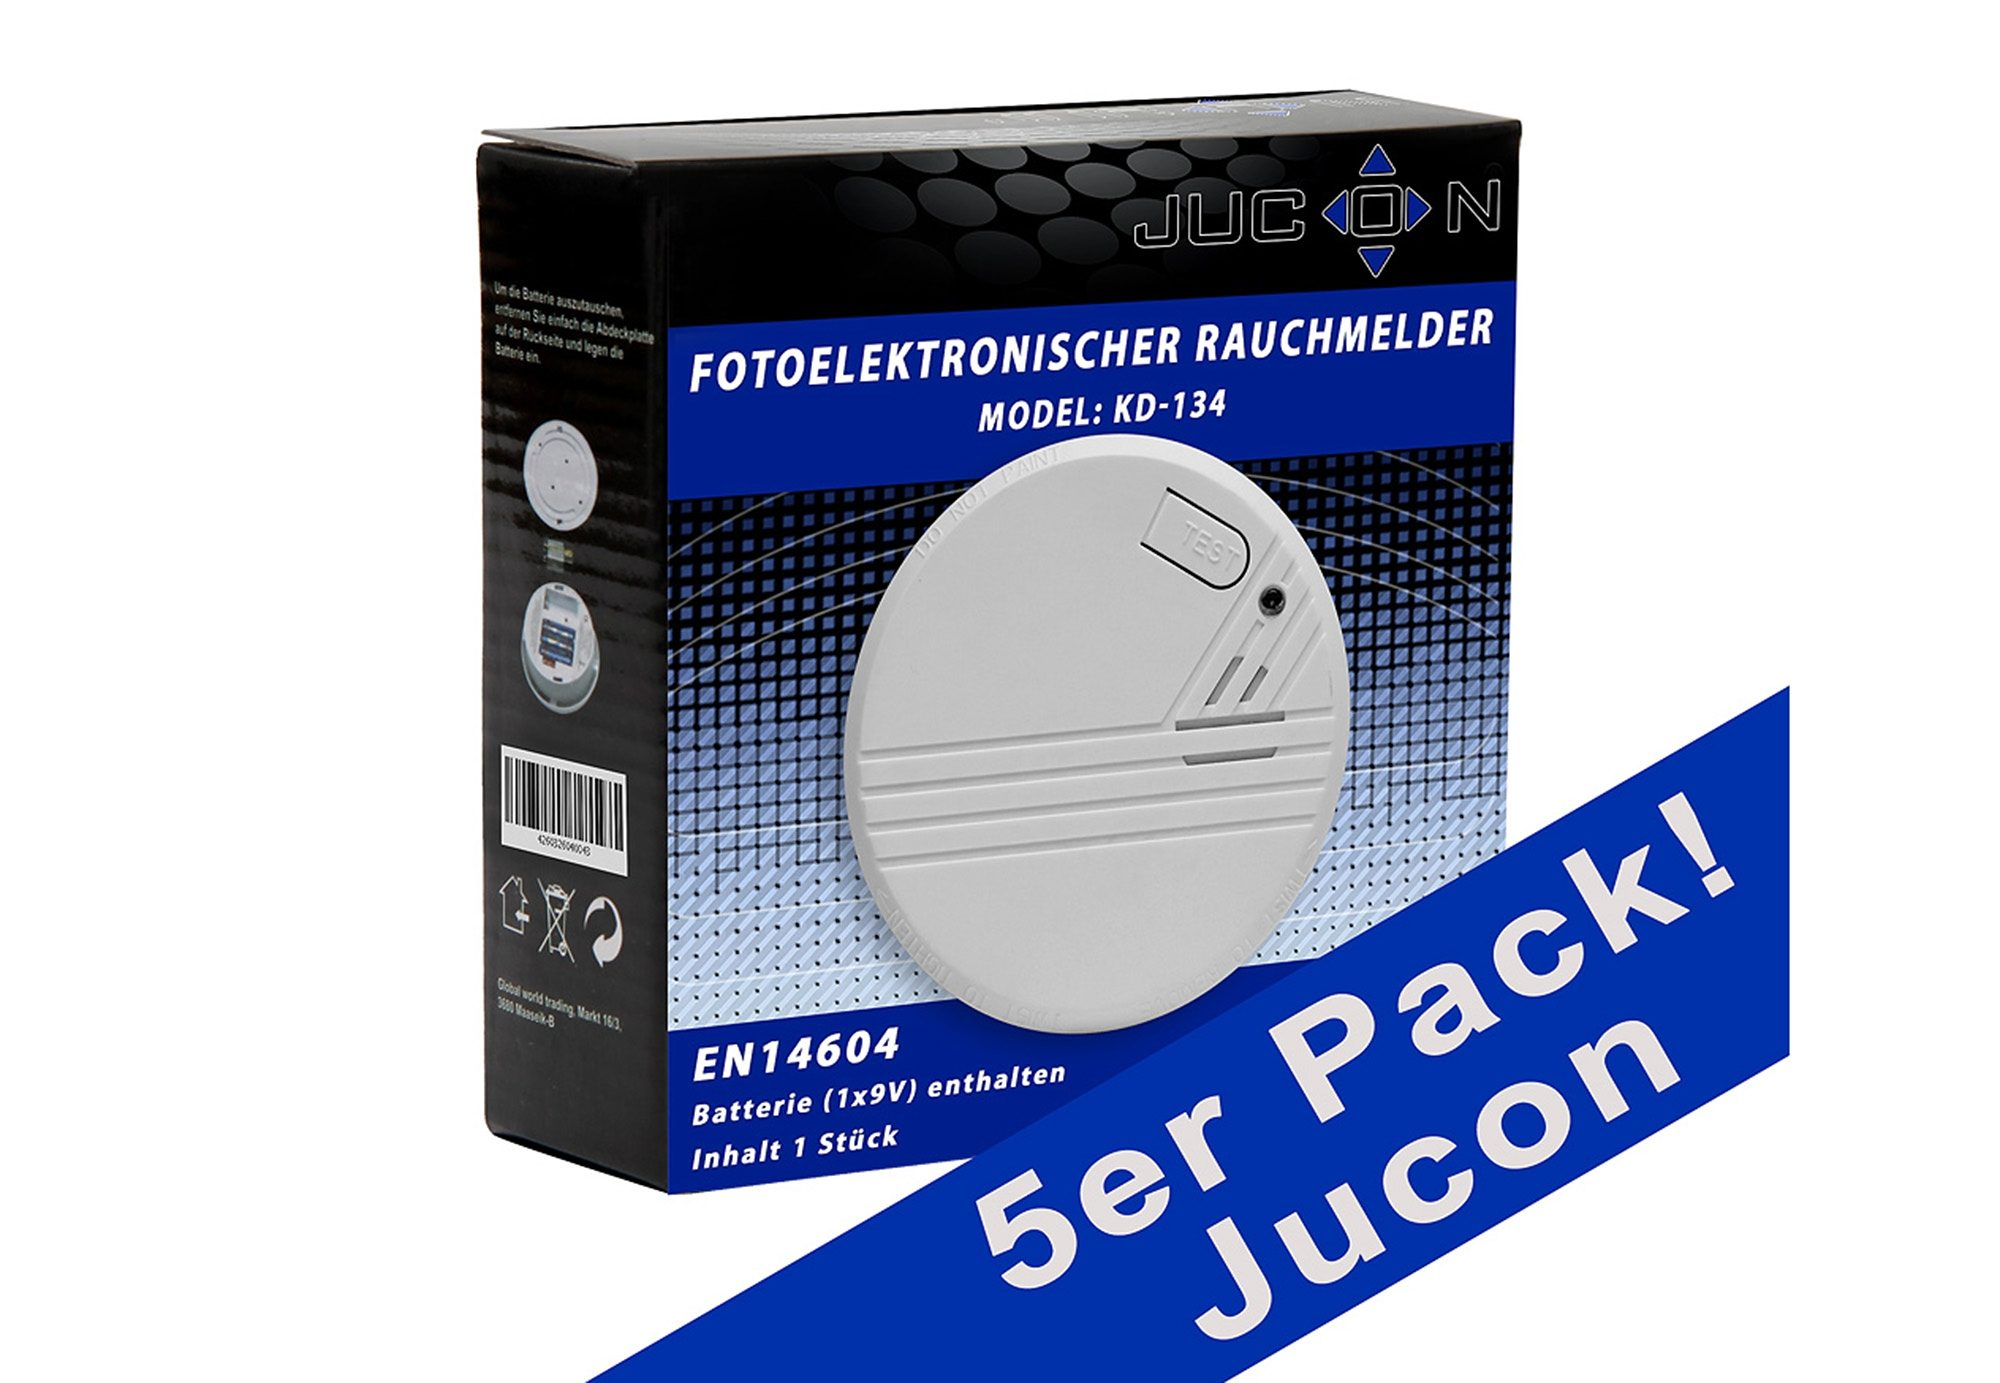 Rauchmelder, Jucon (5er Set)